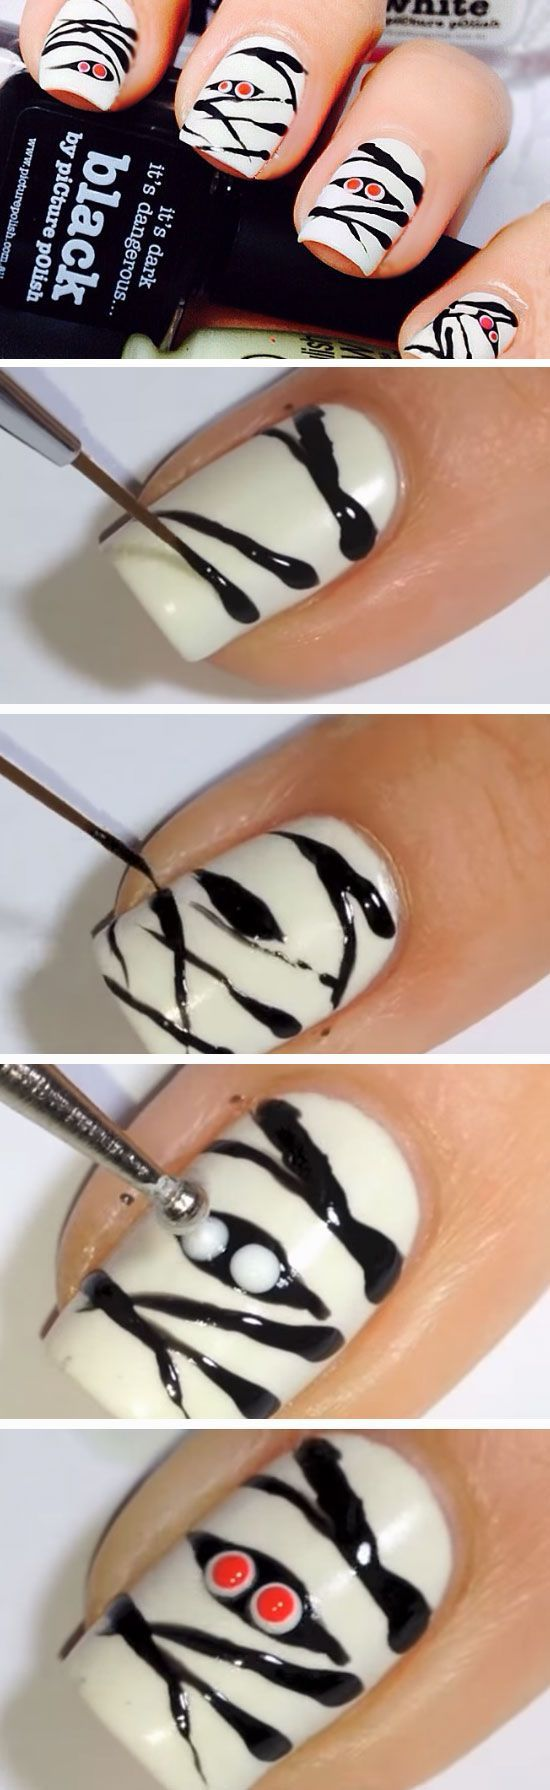 Mummies | 23 Easy Halloween Nail Art Ideas for Teens that are totally spooktastic!